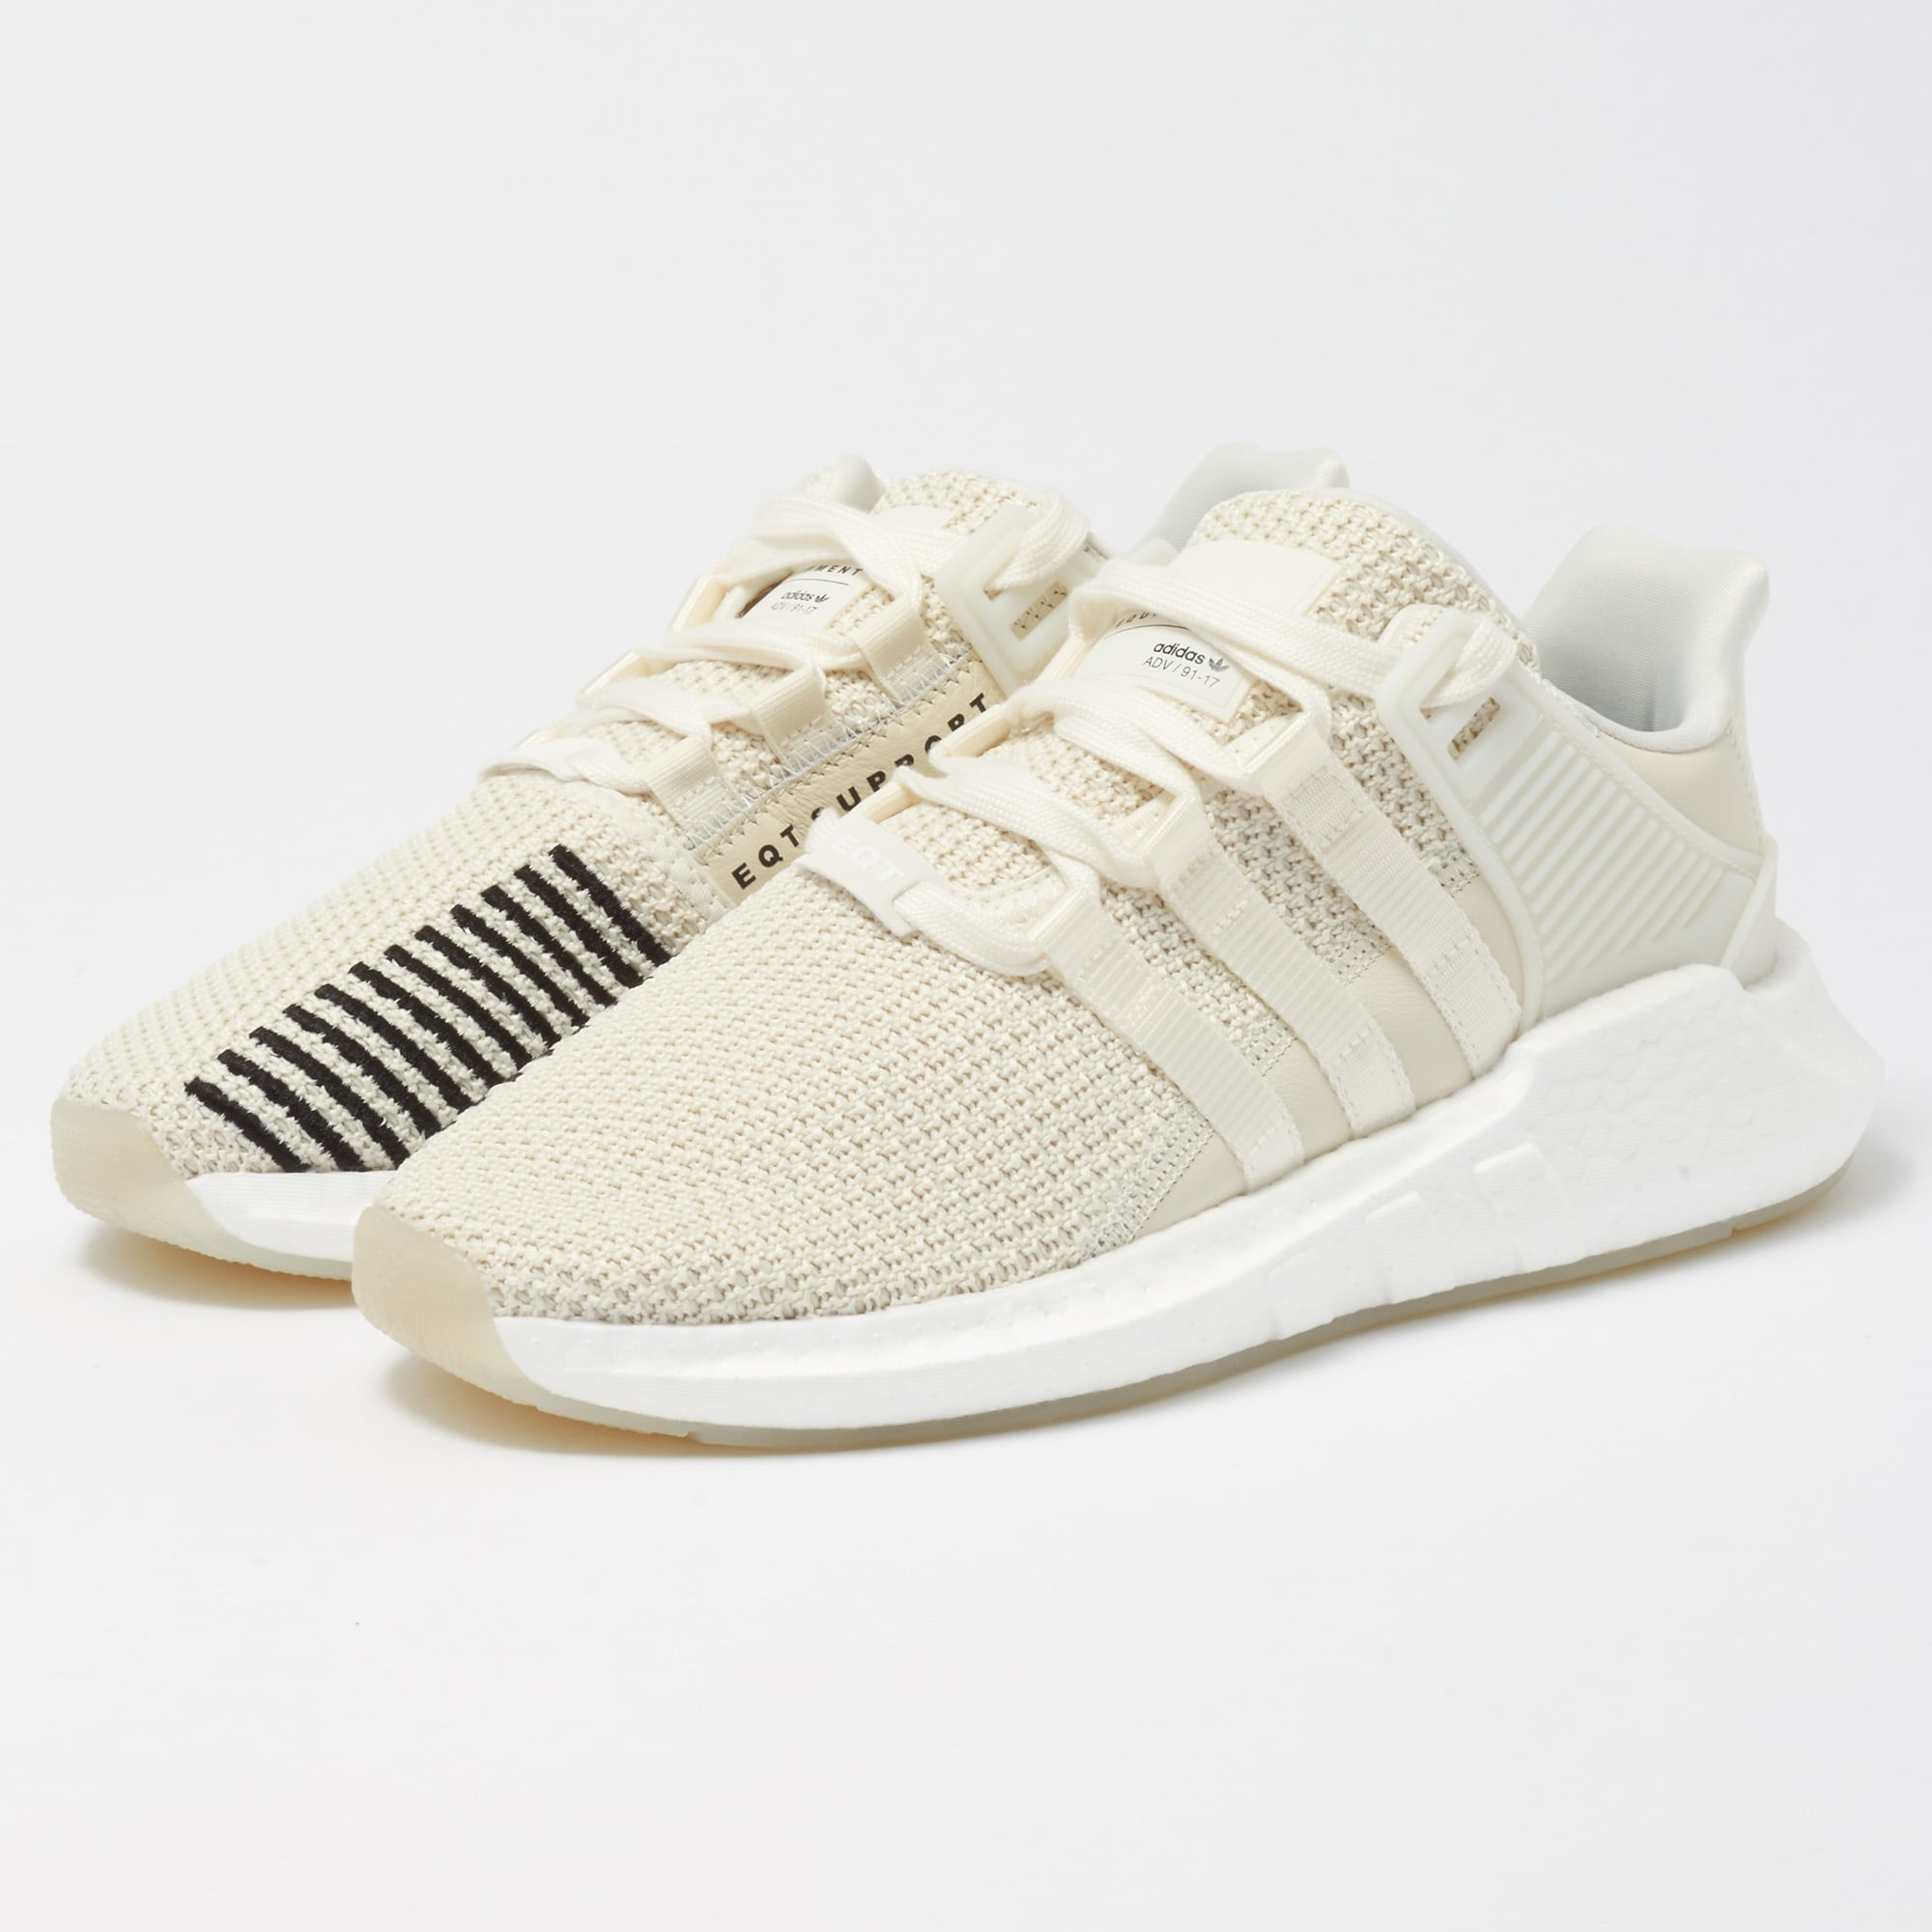 adidas EQT Support 93/17 Sneakers Gr. UK 11 yyDnLPvSg